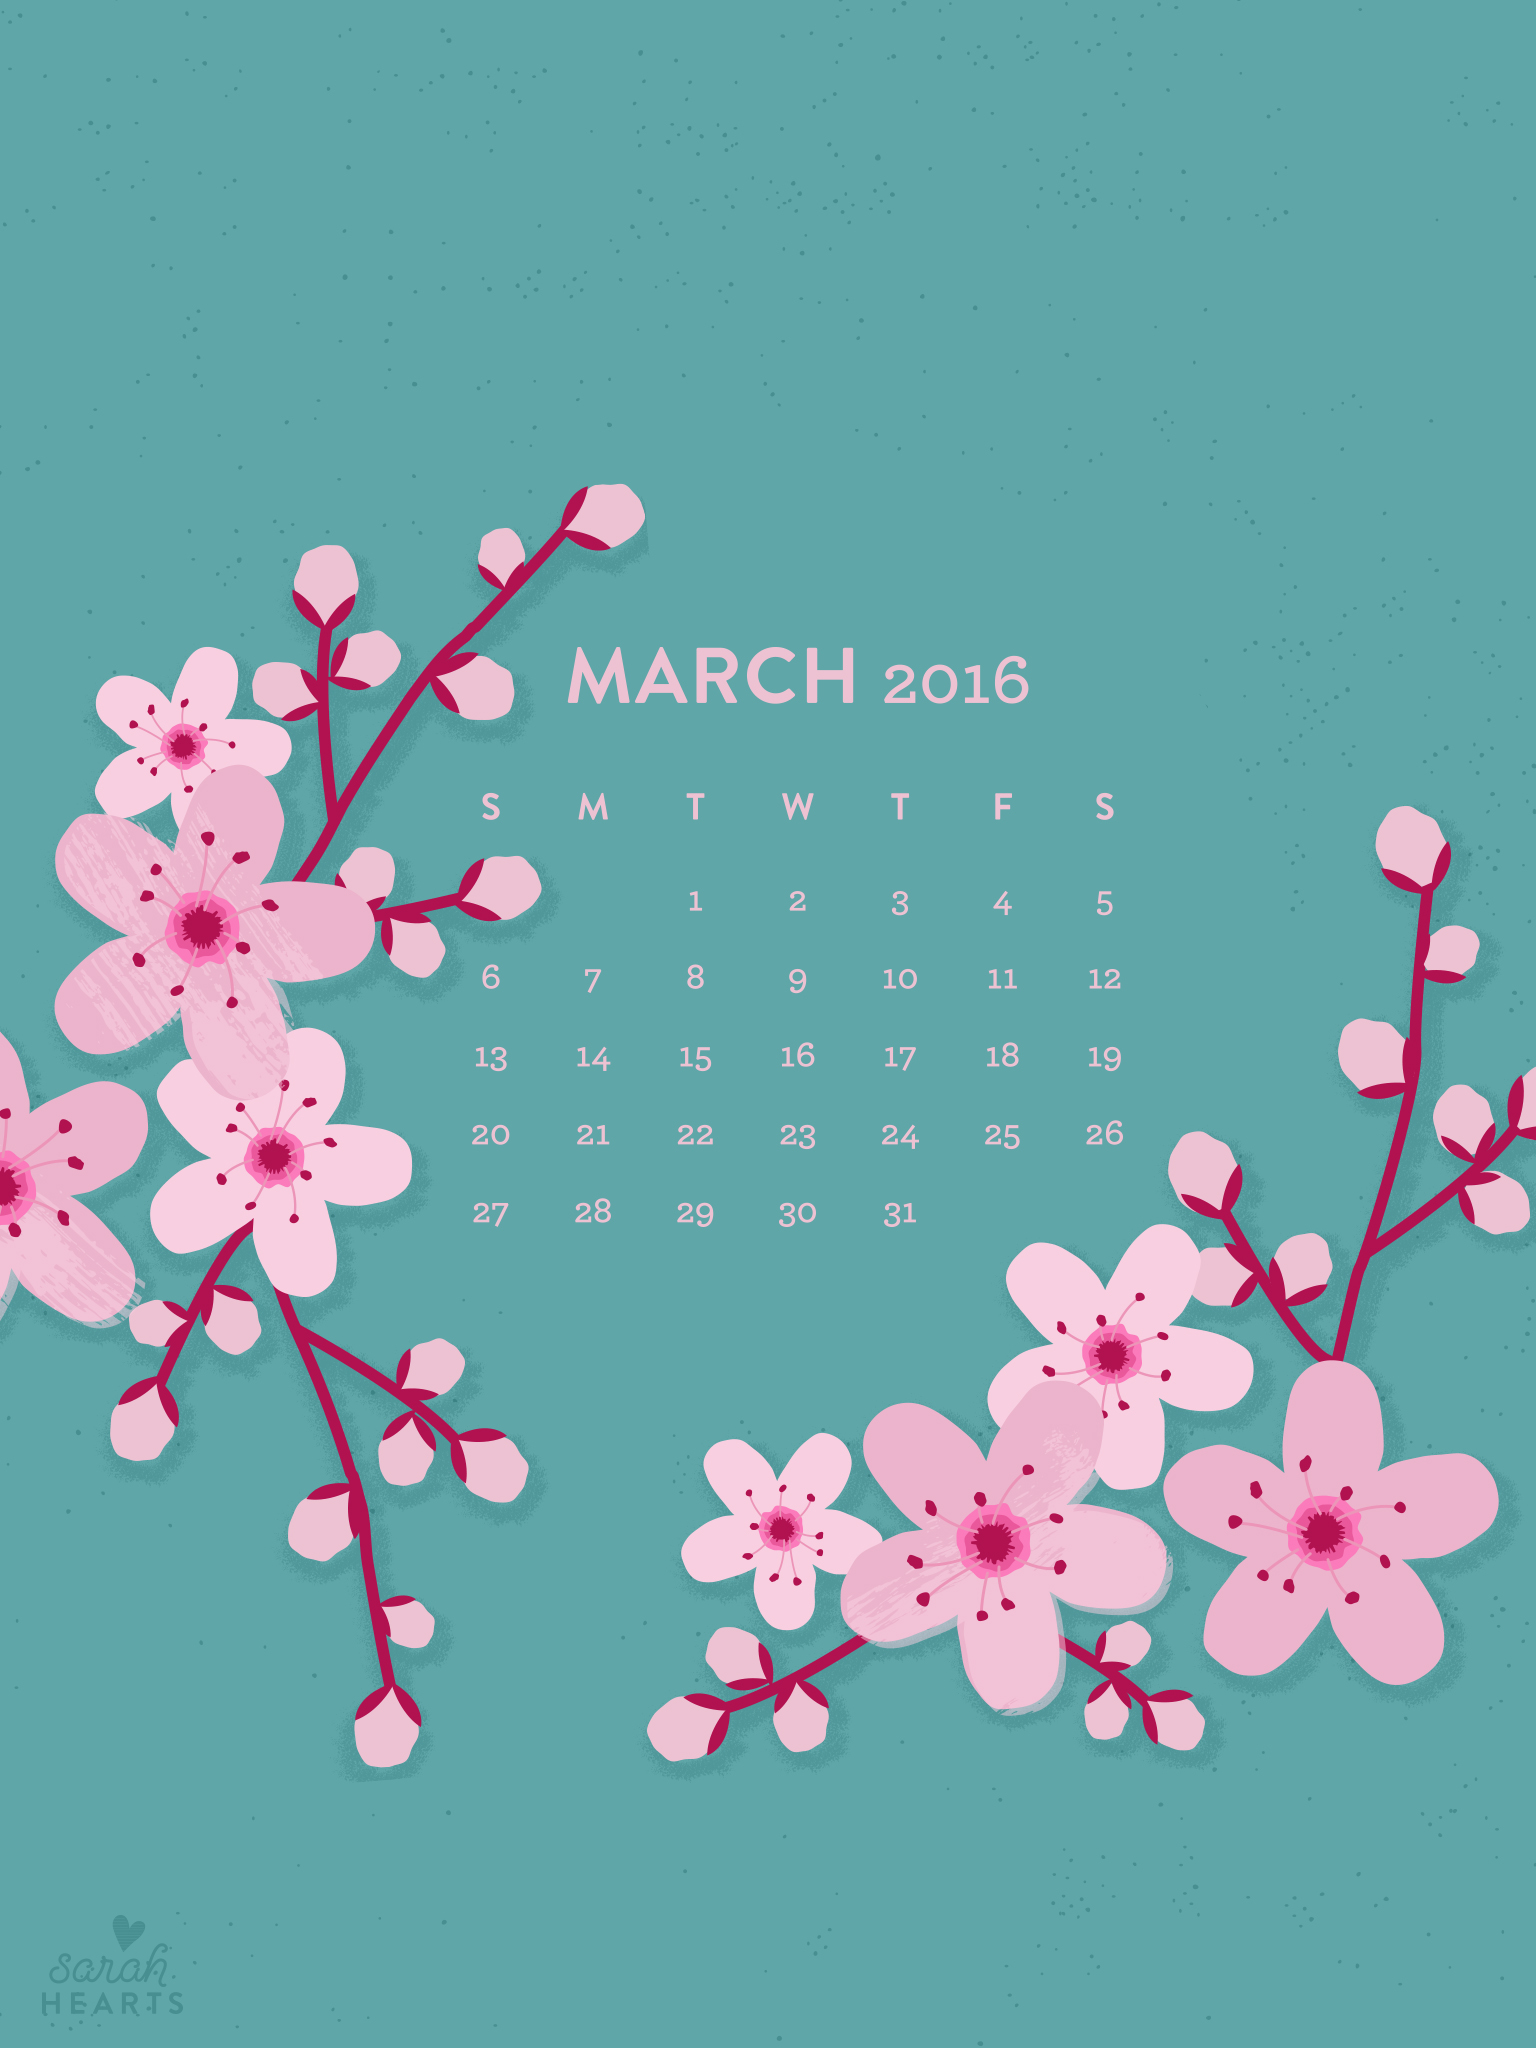 March 2016 Cherry Blossom Calendar Wallpaper   Sarah Hearts 1536x2048